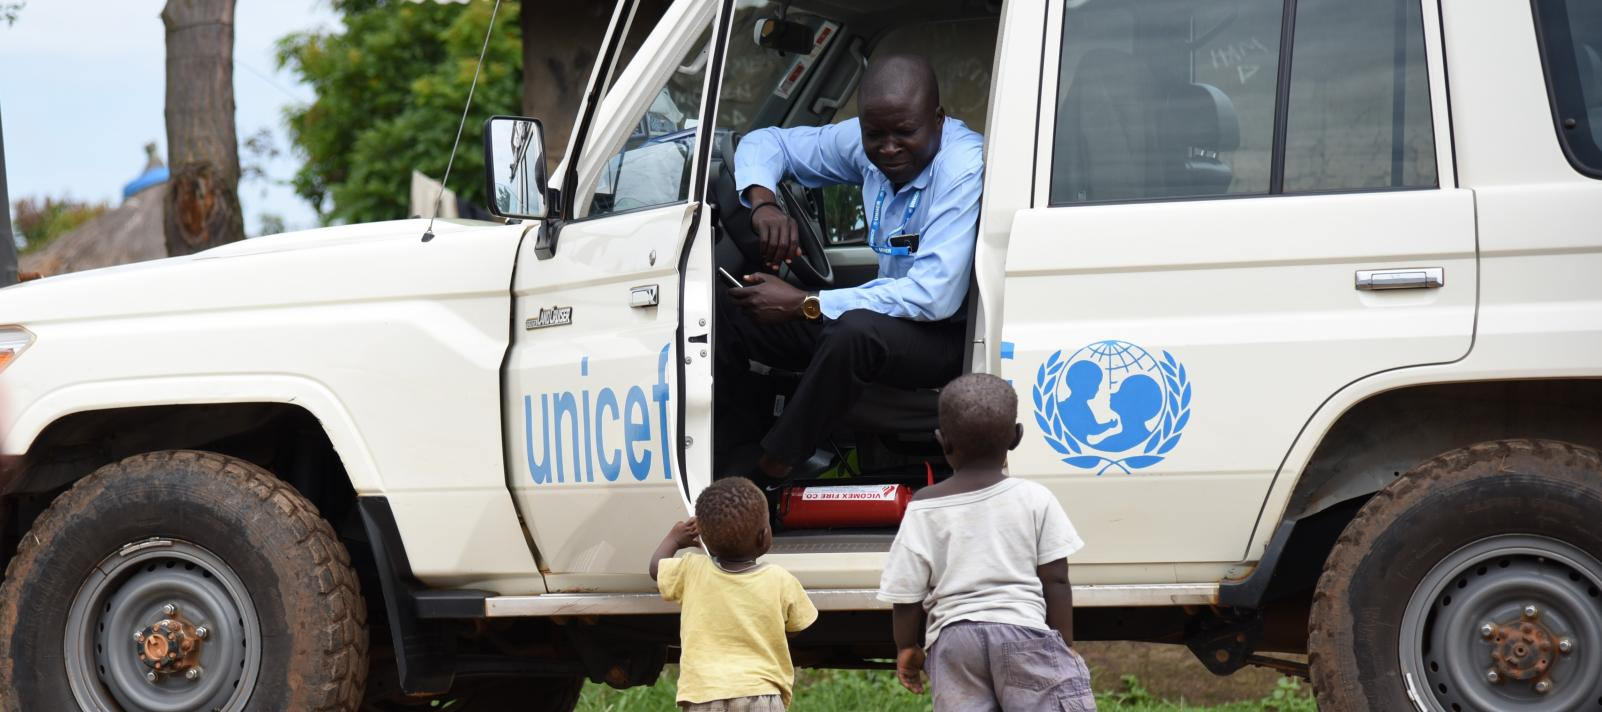 To children are approaching a UNICEF car and driver